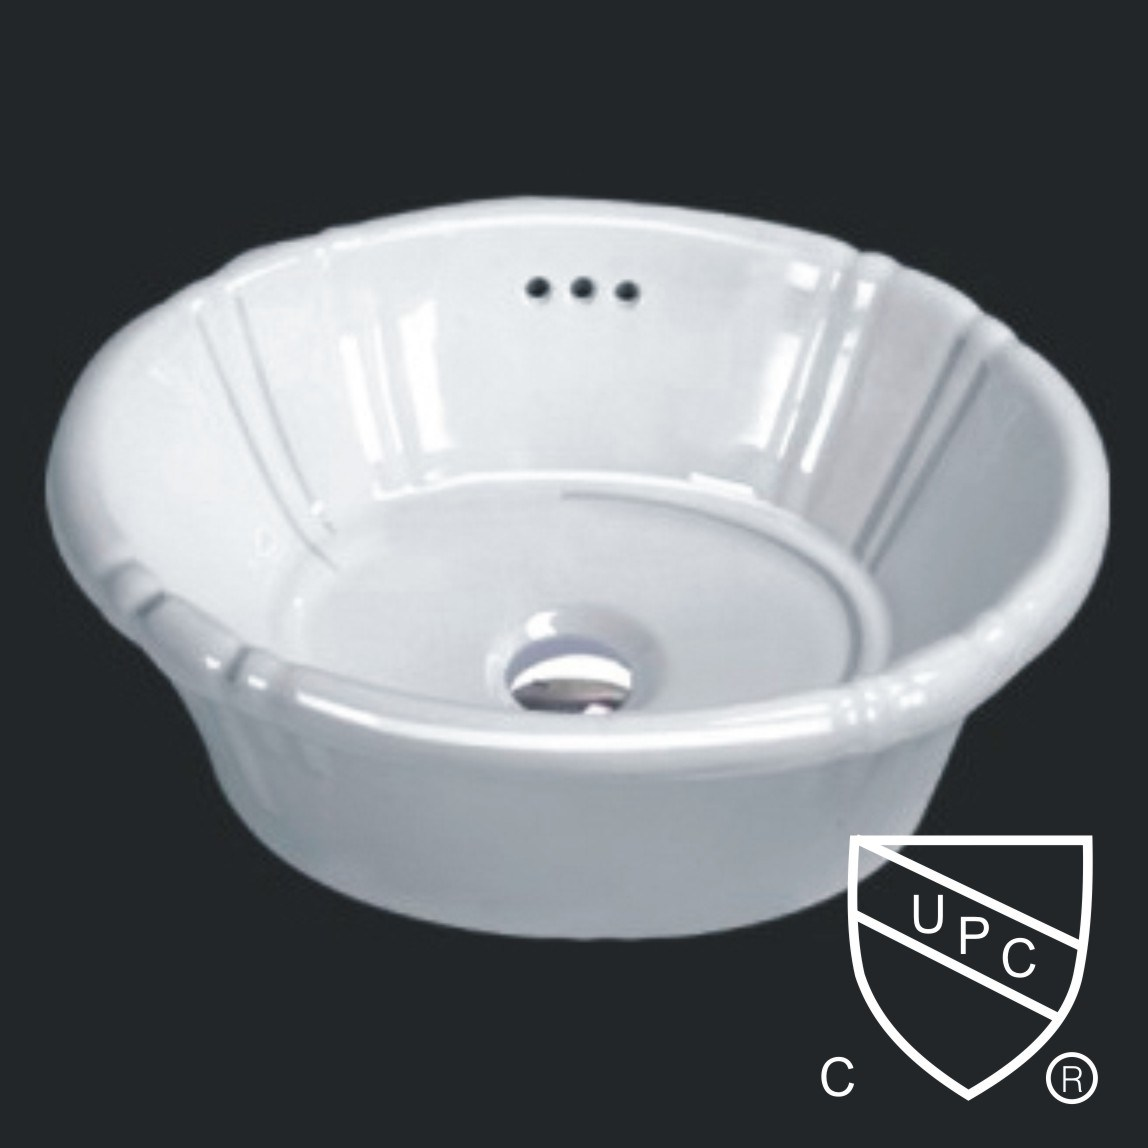 Drop in Basin with upc,changie ceramic sink (1021)